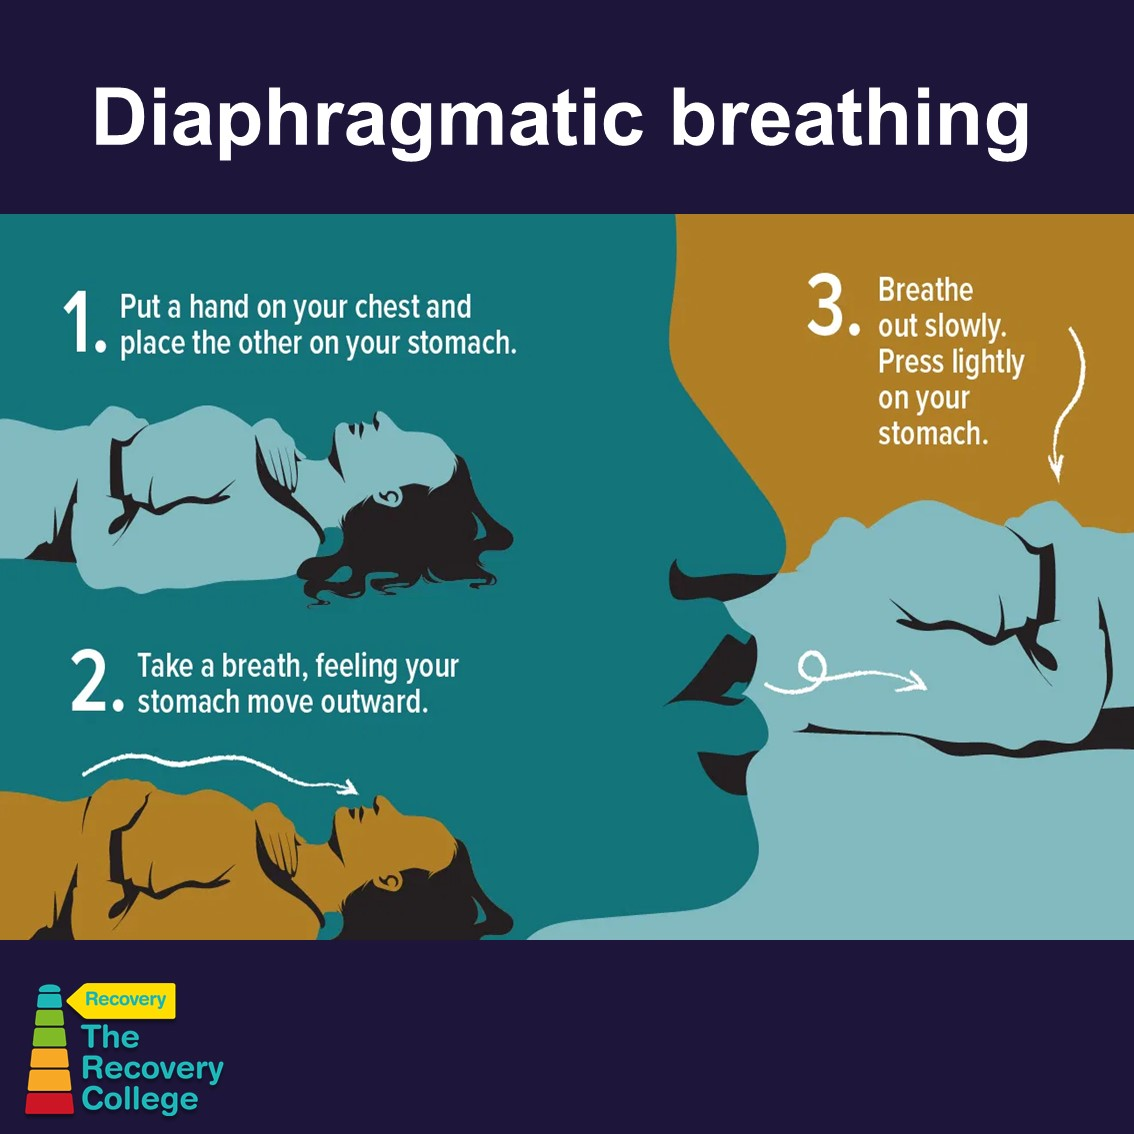 Just taking 5 minutes to relax and drawing your attention to your physical self can help you to feel more centred and in tune with your mind and body. @RhiSHFT @DraycottPaul @Southern_NHSFT @StaffSouthern @comms_it @CarersTogether1 @CarersinSoton @italkHants #breathingexercises